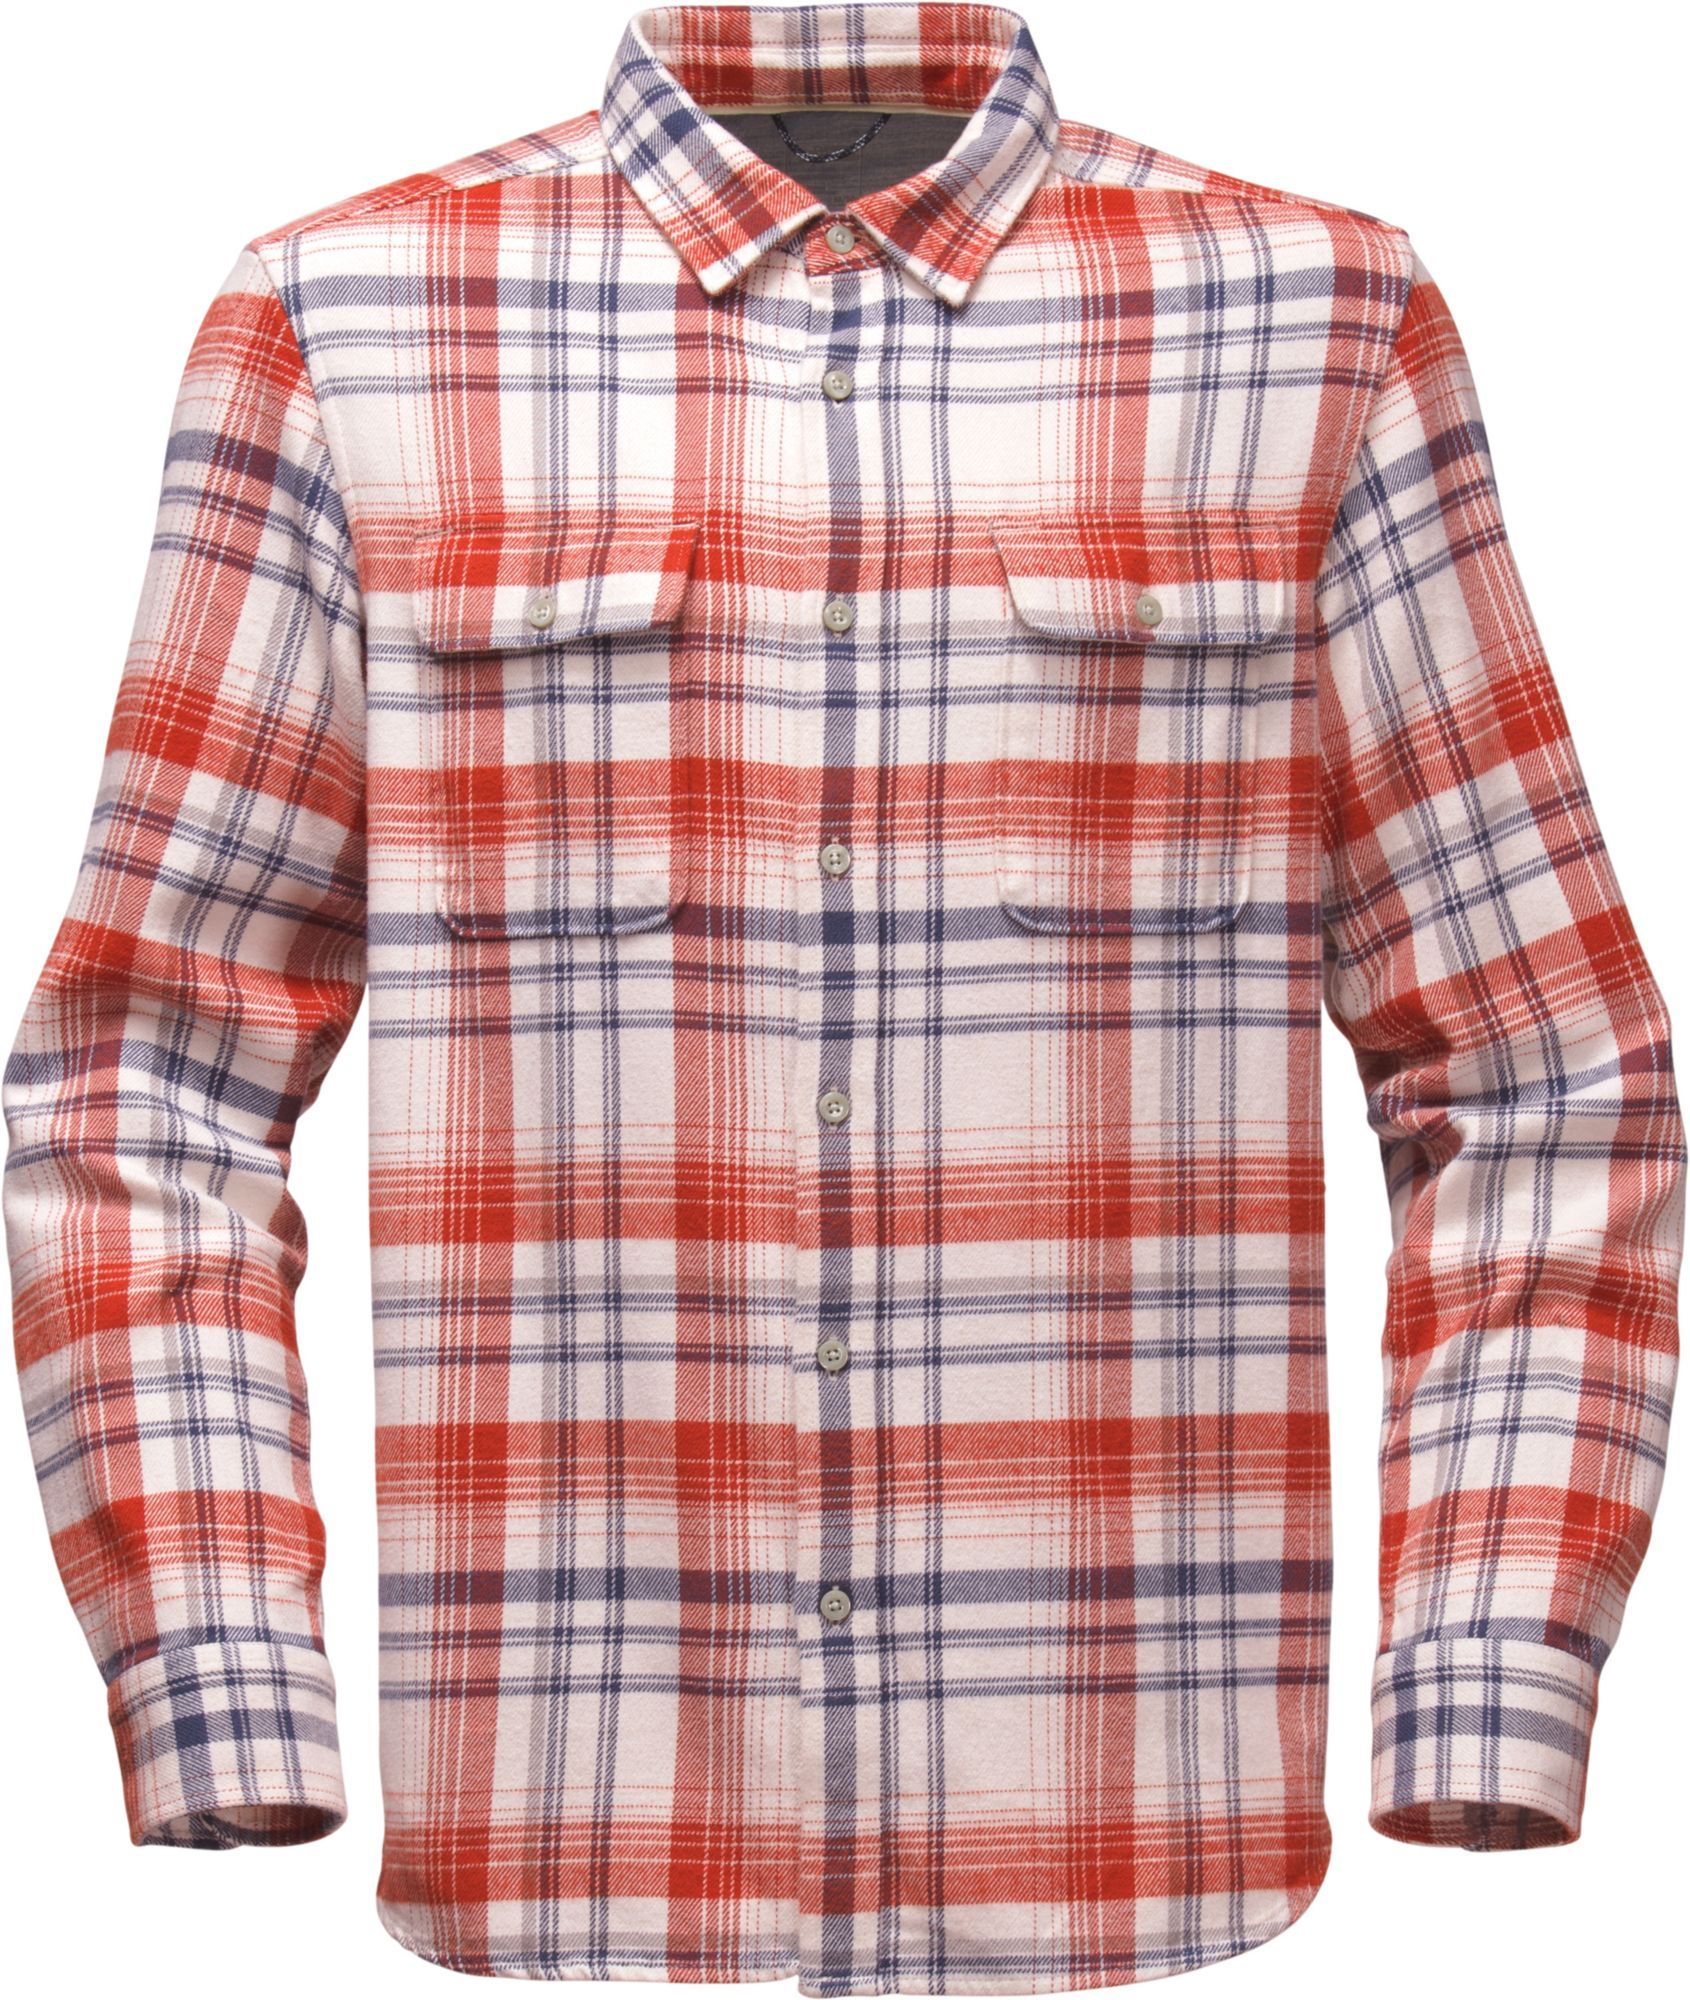 cd713476b The North Face Men's Arroyo Flannel Long Sleeve Shirt, Size: XL ...